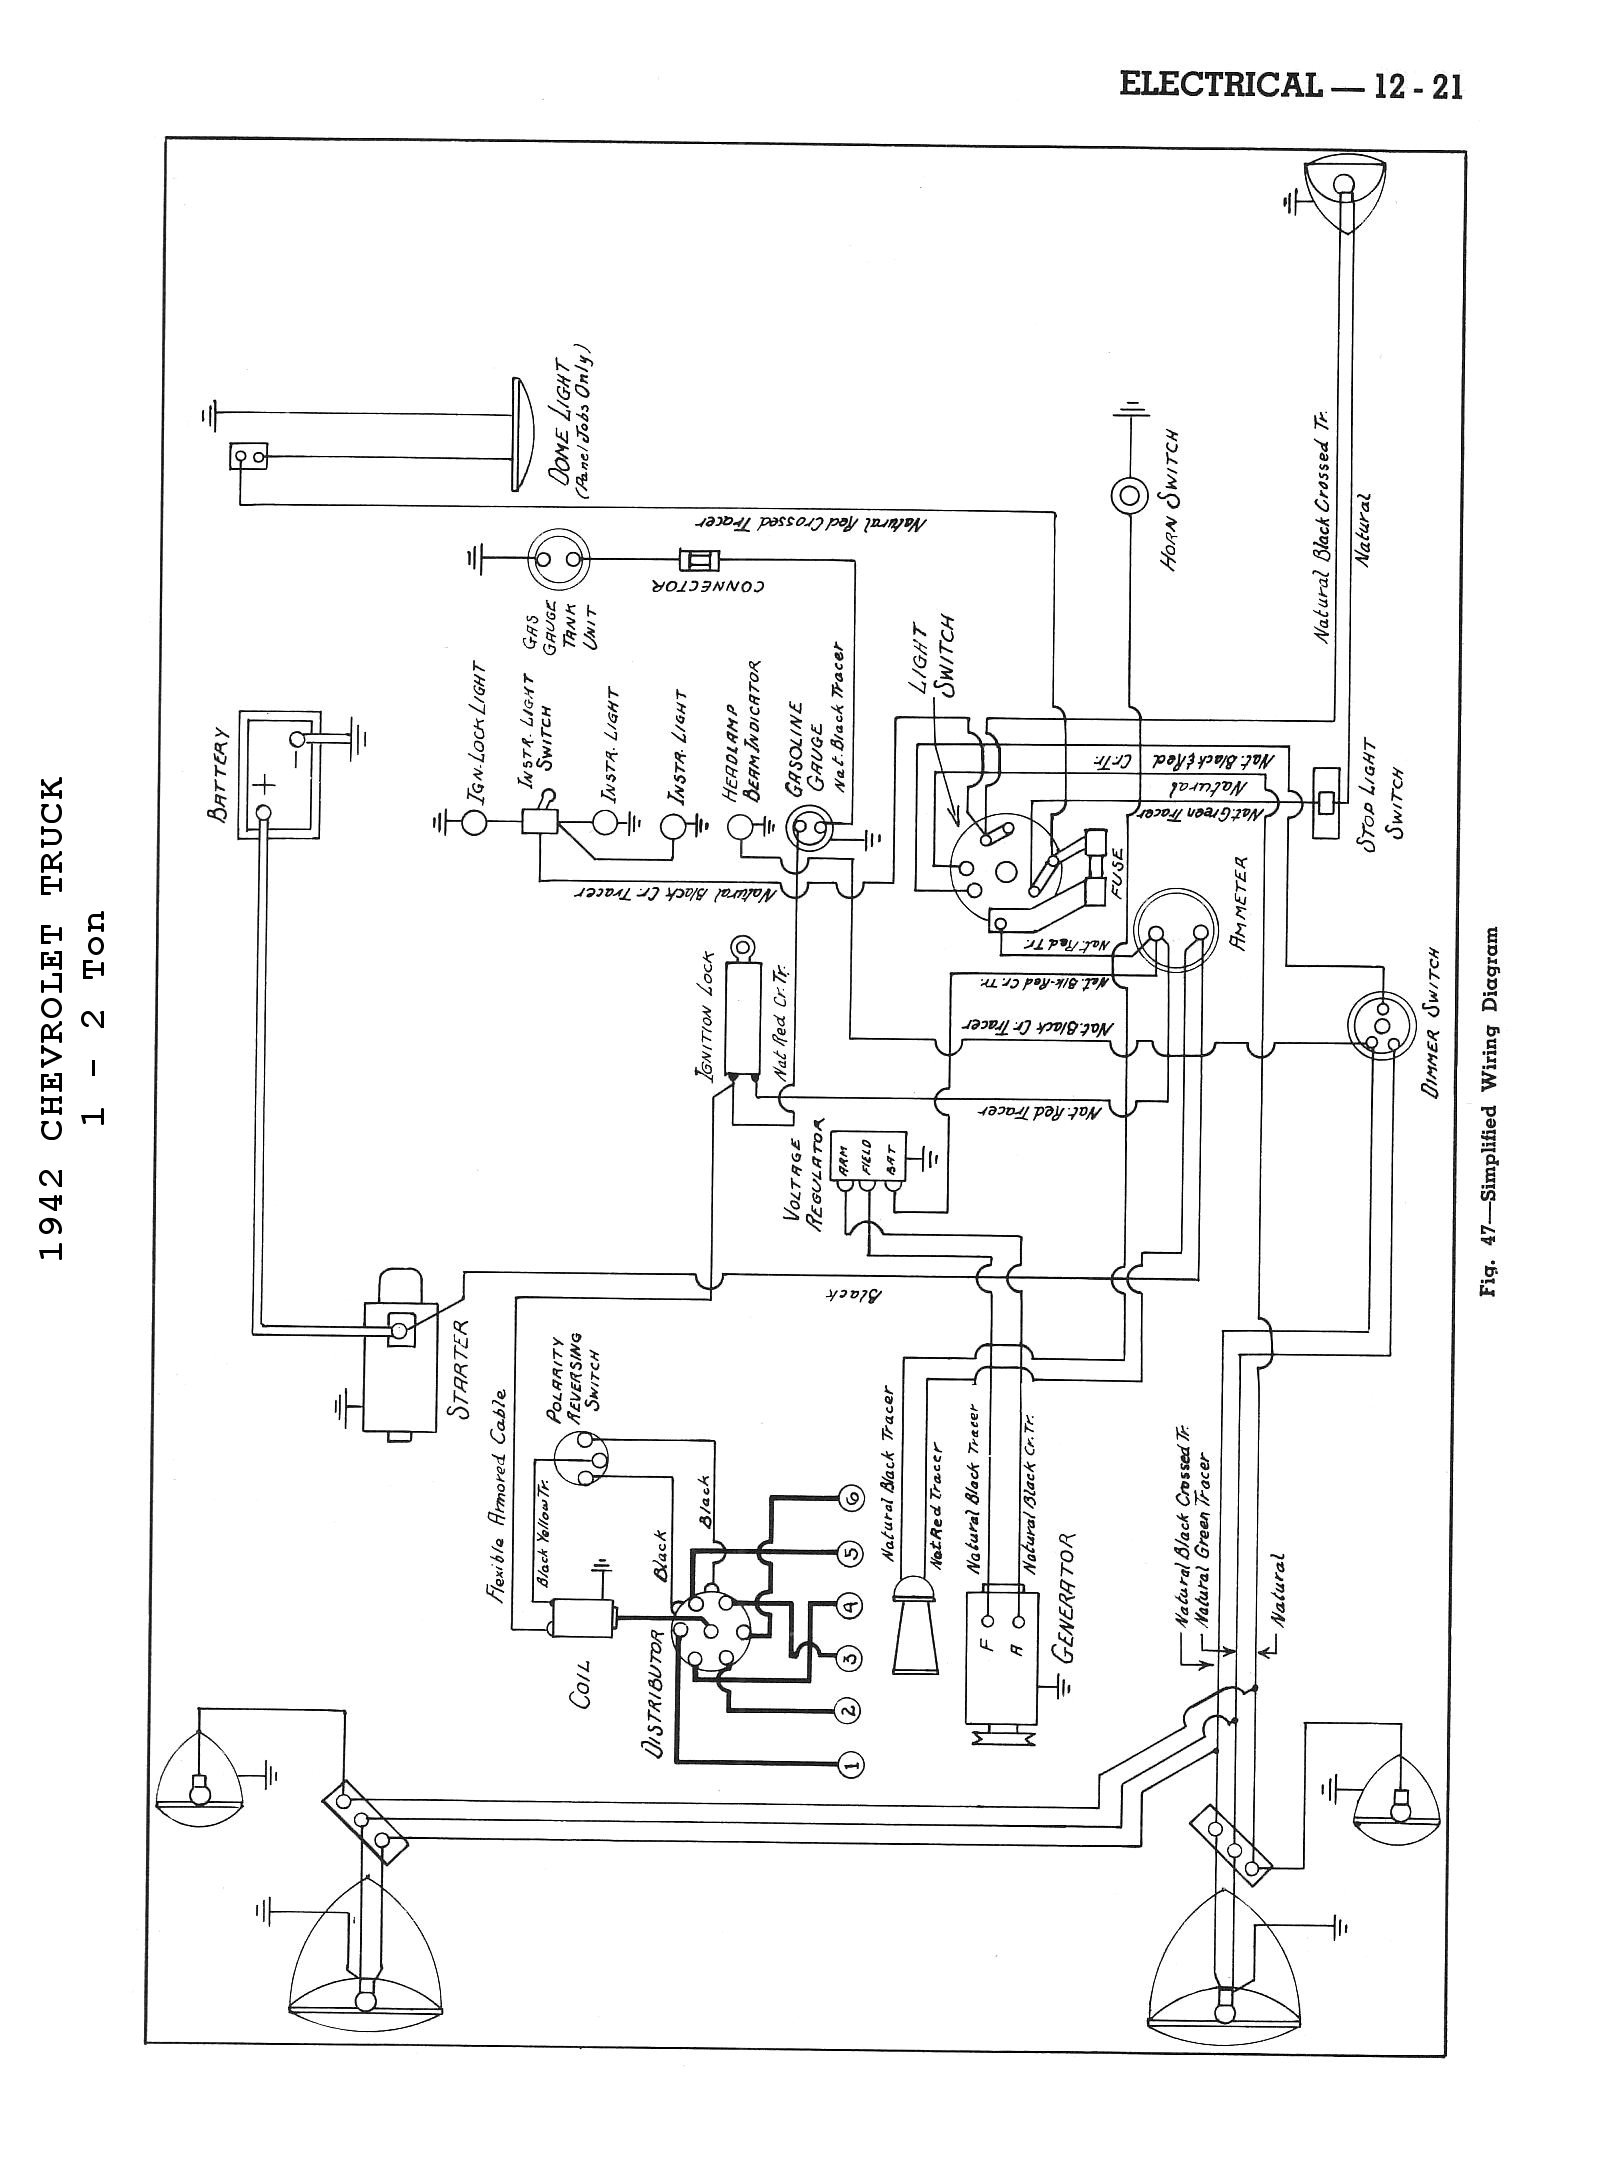 42cm4x2t1221 cm wiring diagram cm hoist wiring diagram \u2022 wiring diagrams j boston subsat 6 wiring diagram at readyjetset.co